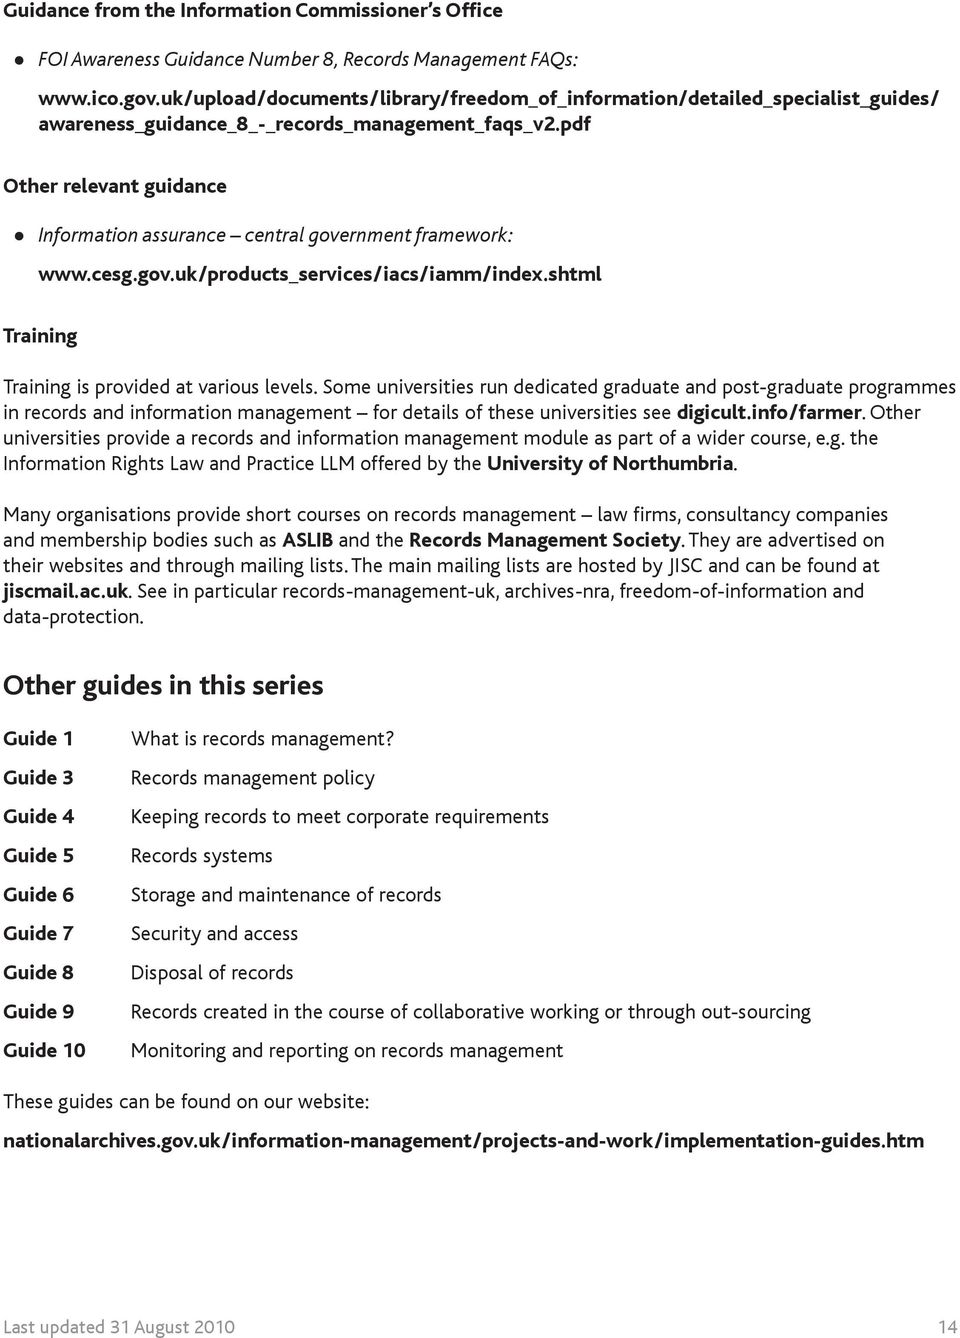 pdf Other relevant guidance Information assurance central government framework: www.cesg.gov.uk/products_services/iacs/iamm/index.shtml Training Training is provided at various levels.